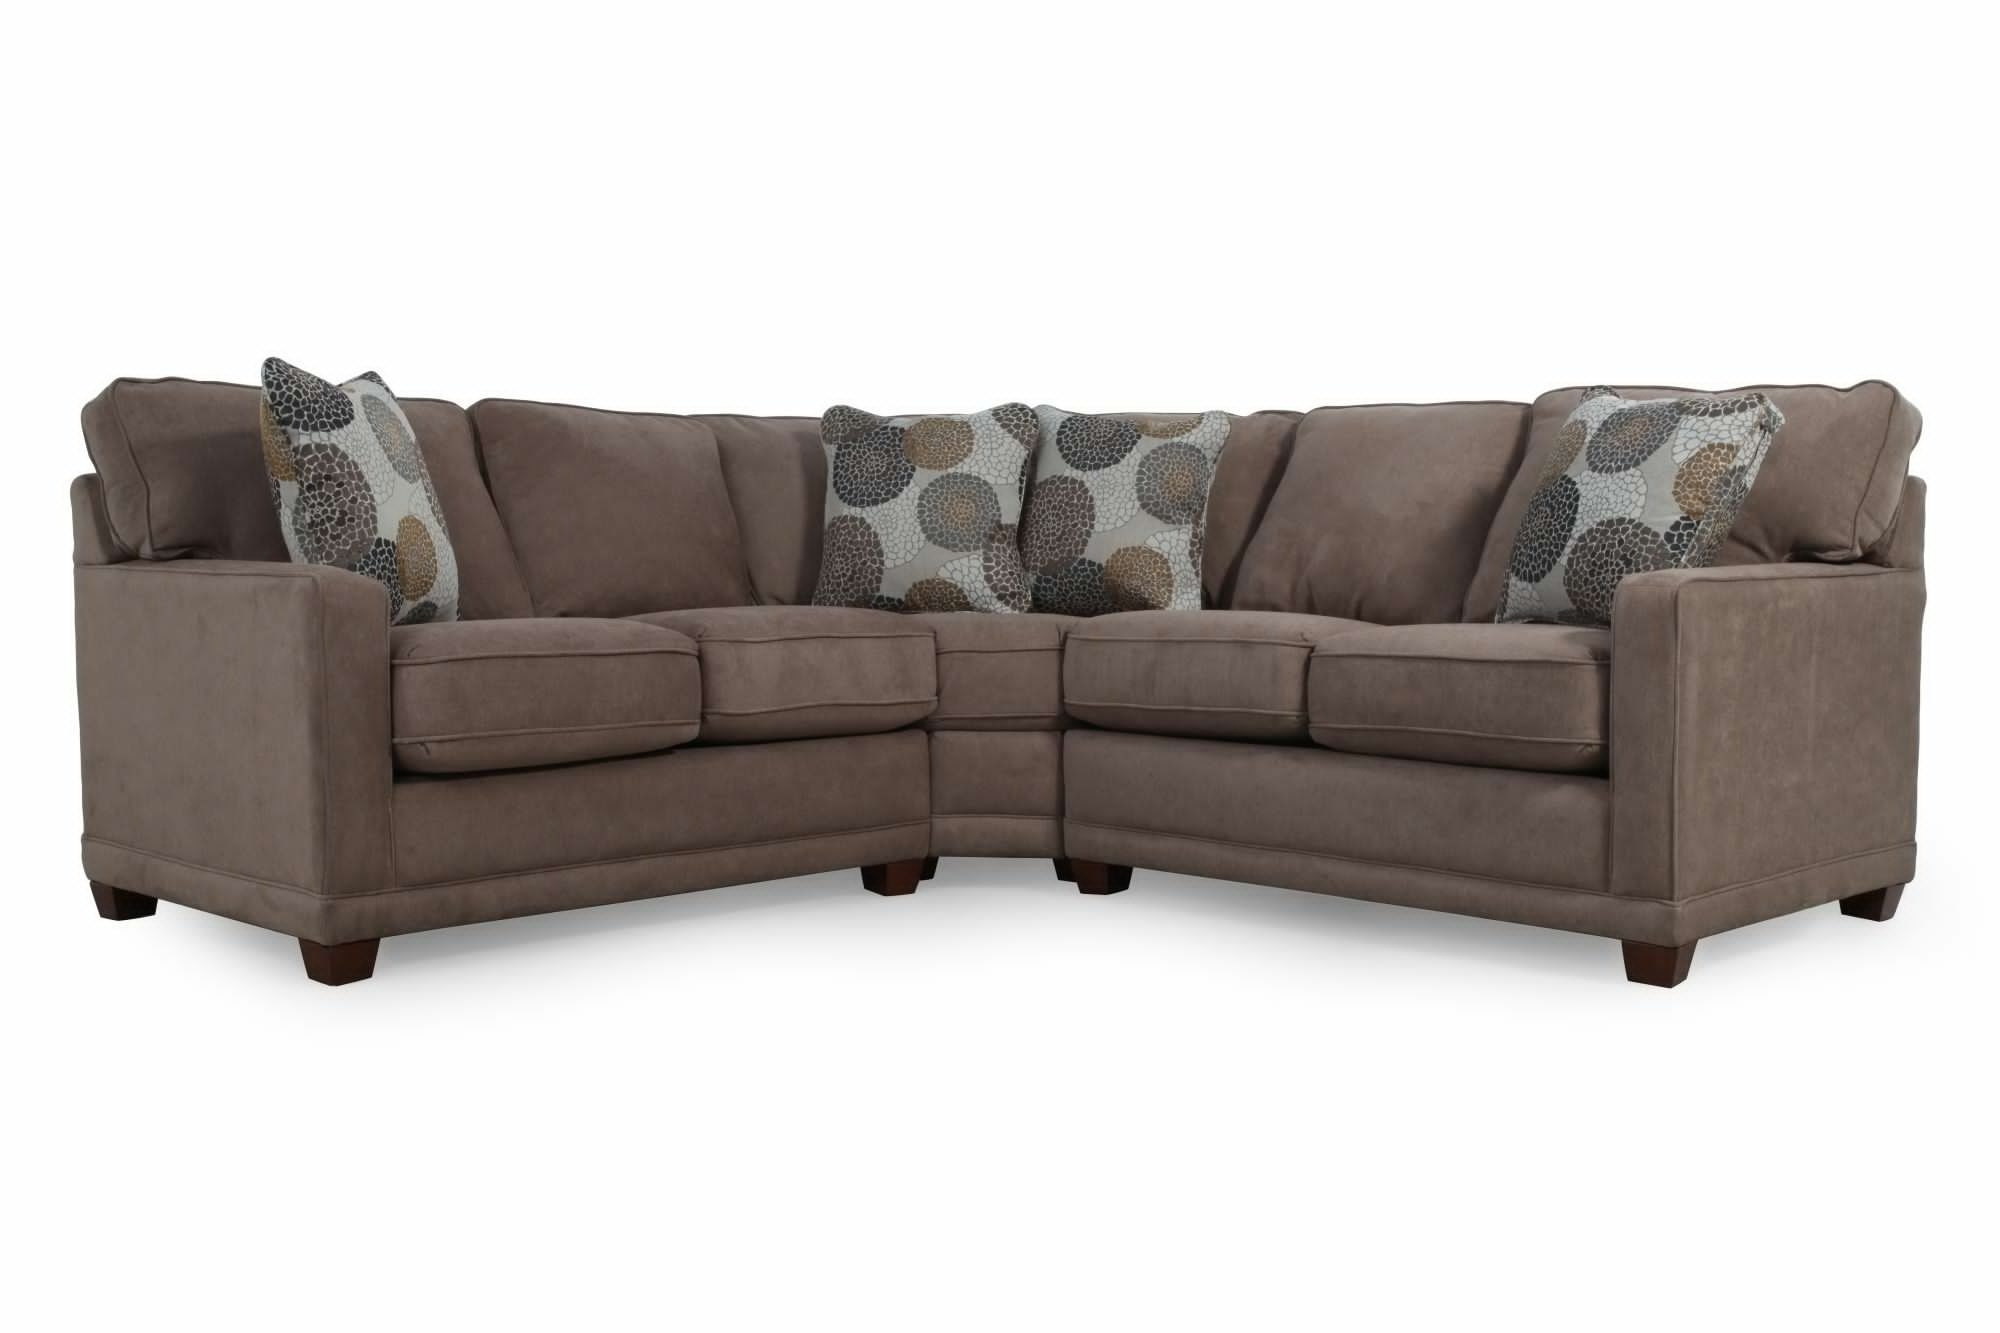 Most Recently Released Sectional Sofa Design: Lazy Boy Sectional Sofa Sale James With Regard To Sectional Sofas At Lazy Boy (View 5 of 20)